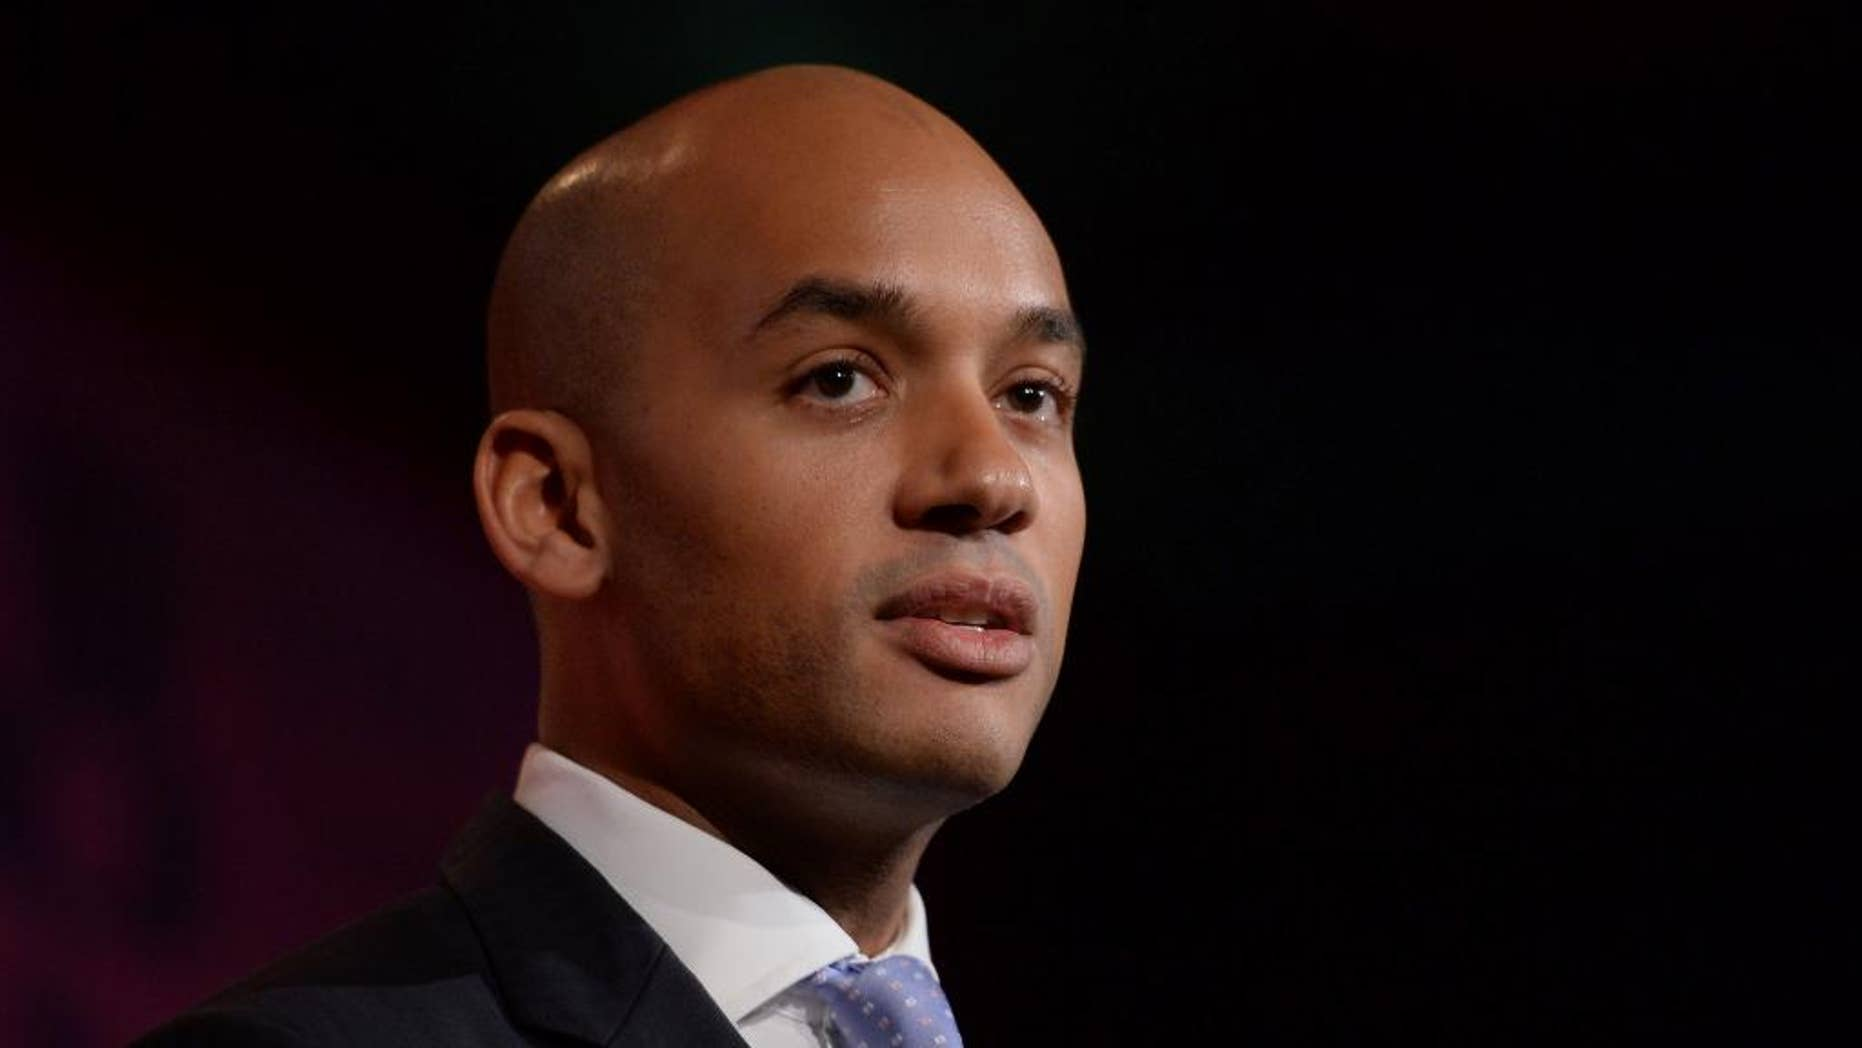 """FILE  - This Tuesday, Feb. 10, 2015 file photo shows Britain's Shadow business secretary Chuka Umunna delivering a speech in London. An up-and-coming British politician who was considered a front-runner to replace Labour leader Ed Miliband abruptly withdrew from the contest Friday, May 15, 2015, saying he had underestimated the intense scrutiny to which he would be subjected. Chuka Umunna, who announced his leadership bid just three days ago, blamed the """"added level of pressure that comes with being a leadership candidate."""" (Anthony Devlin/Pa via AP, file)    UNITED KINGDOM OUT     -    NO SALES     -     NO ARCHIVES"""